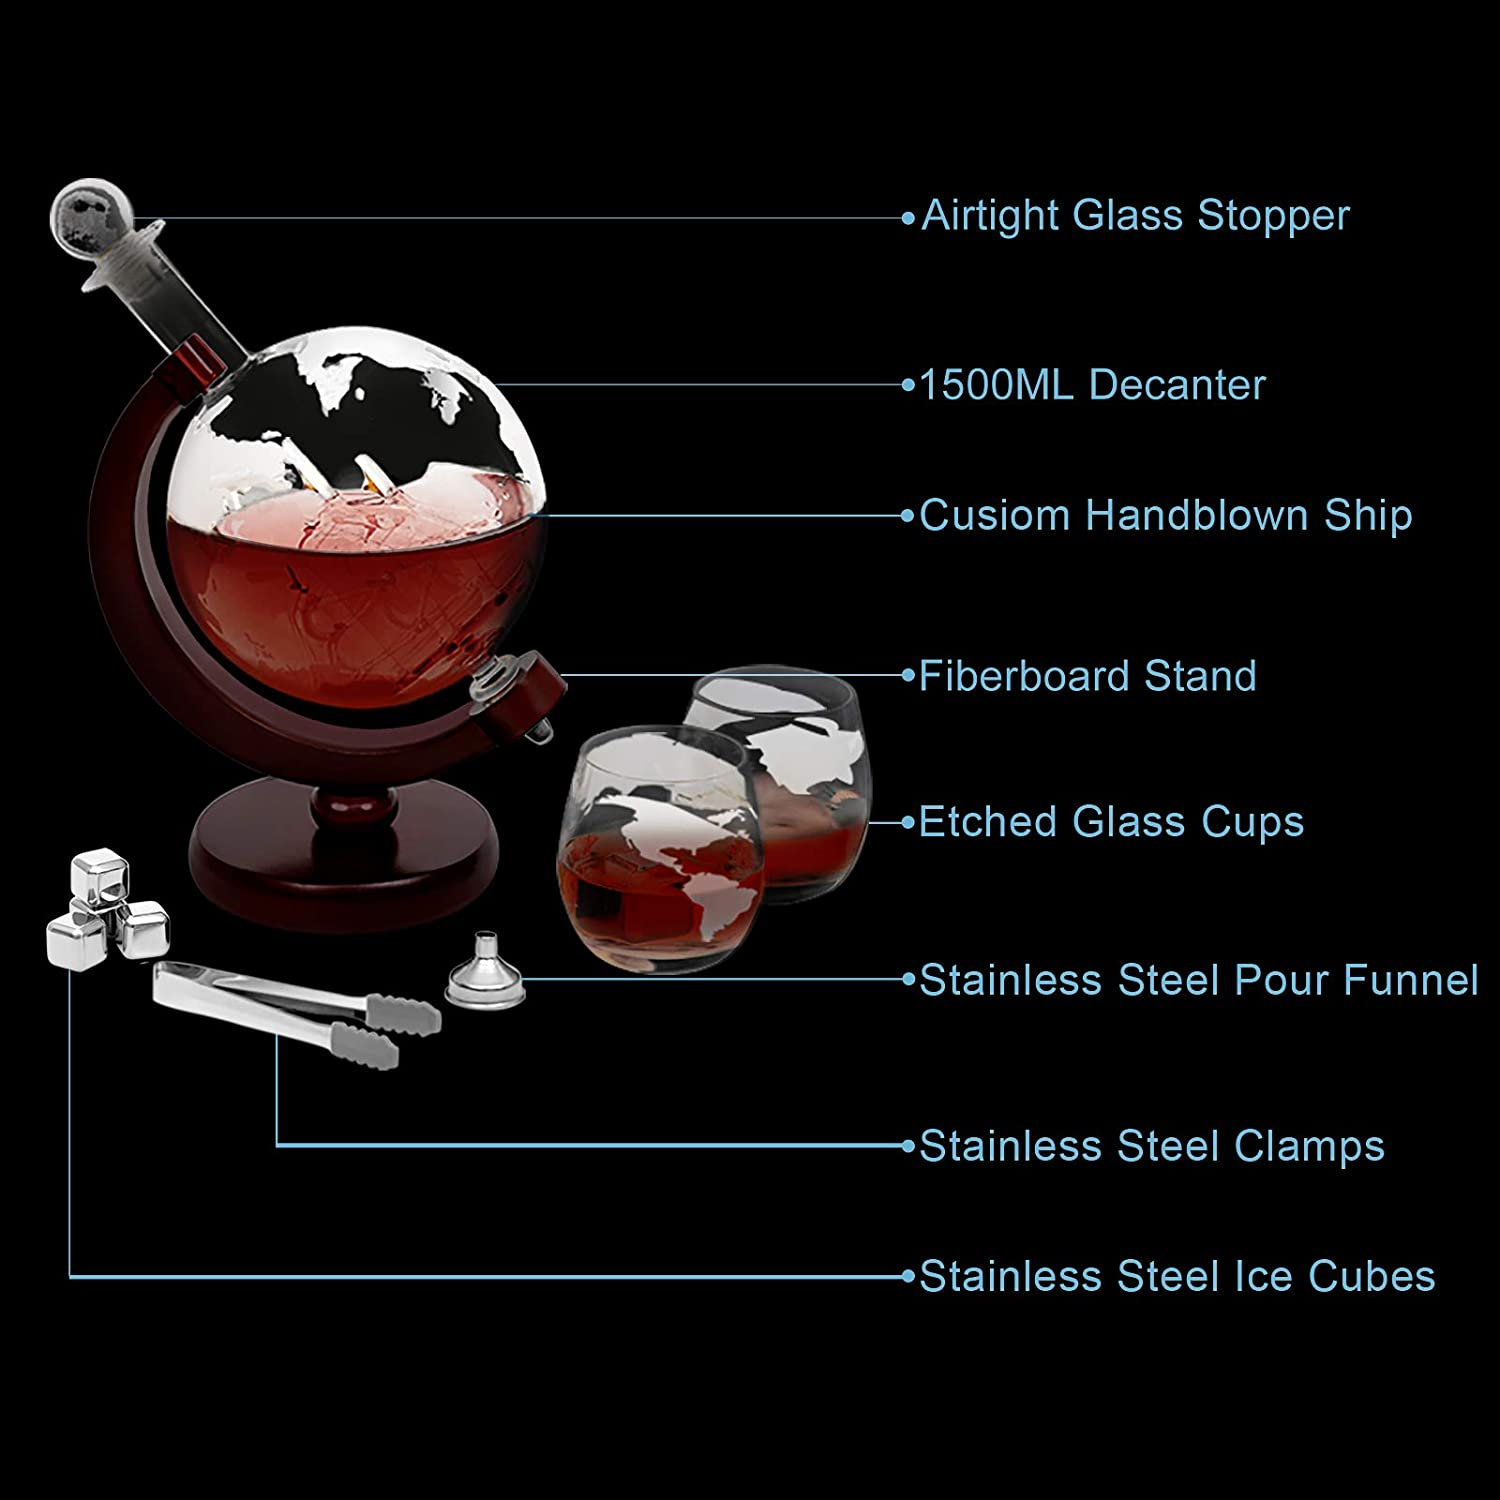 2 Etched Globe Glasses Ice Tongs and 4 Whiskey Stones 1500 ml Globe Decanter with Glass Set Stopper Glass Whisky Decanter Set Stainless Steel Pouring Funnel